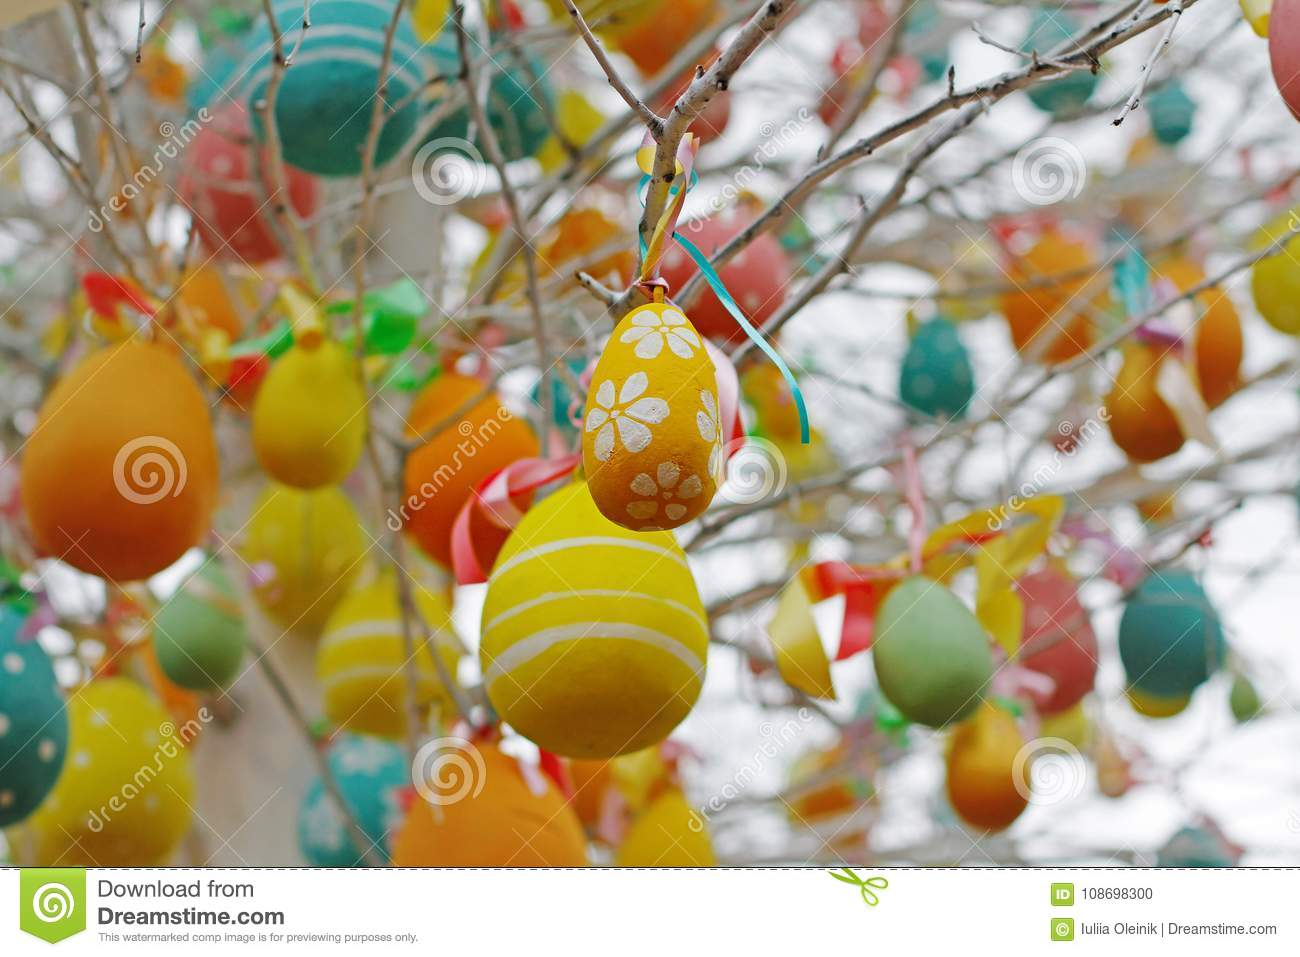 Decorated Easter Eggs Hanging On Tree Branches Stock Photo Image Of Card Annual 108698300